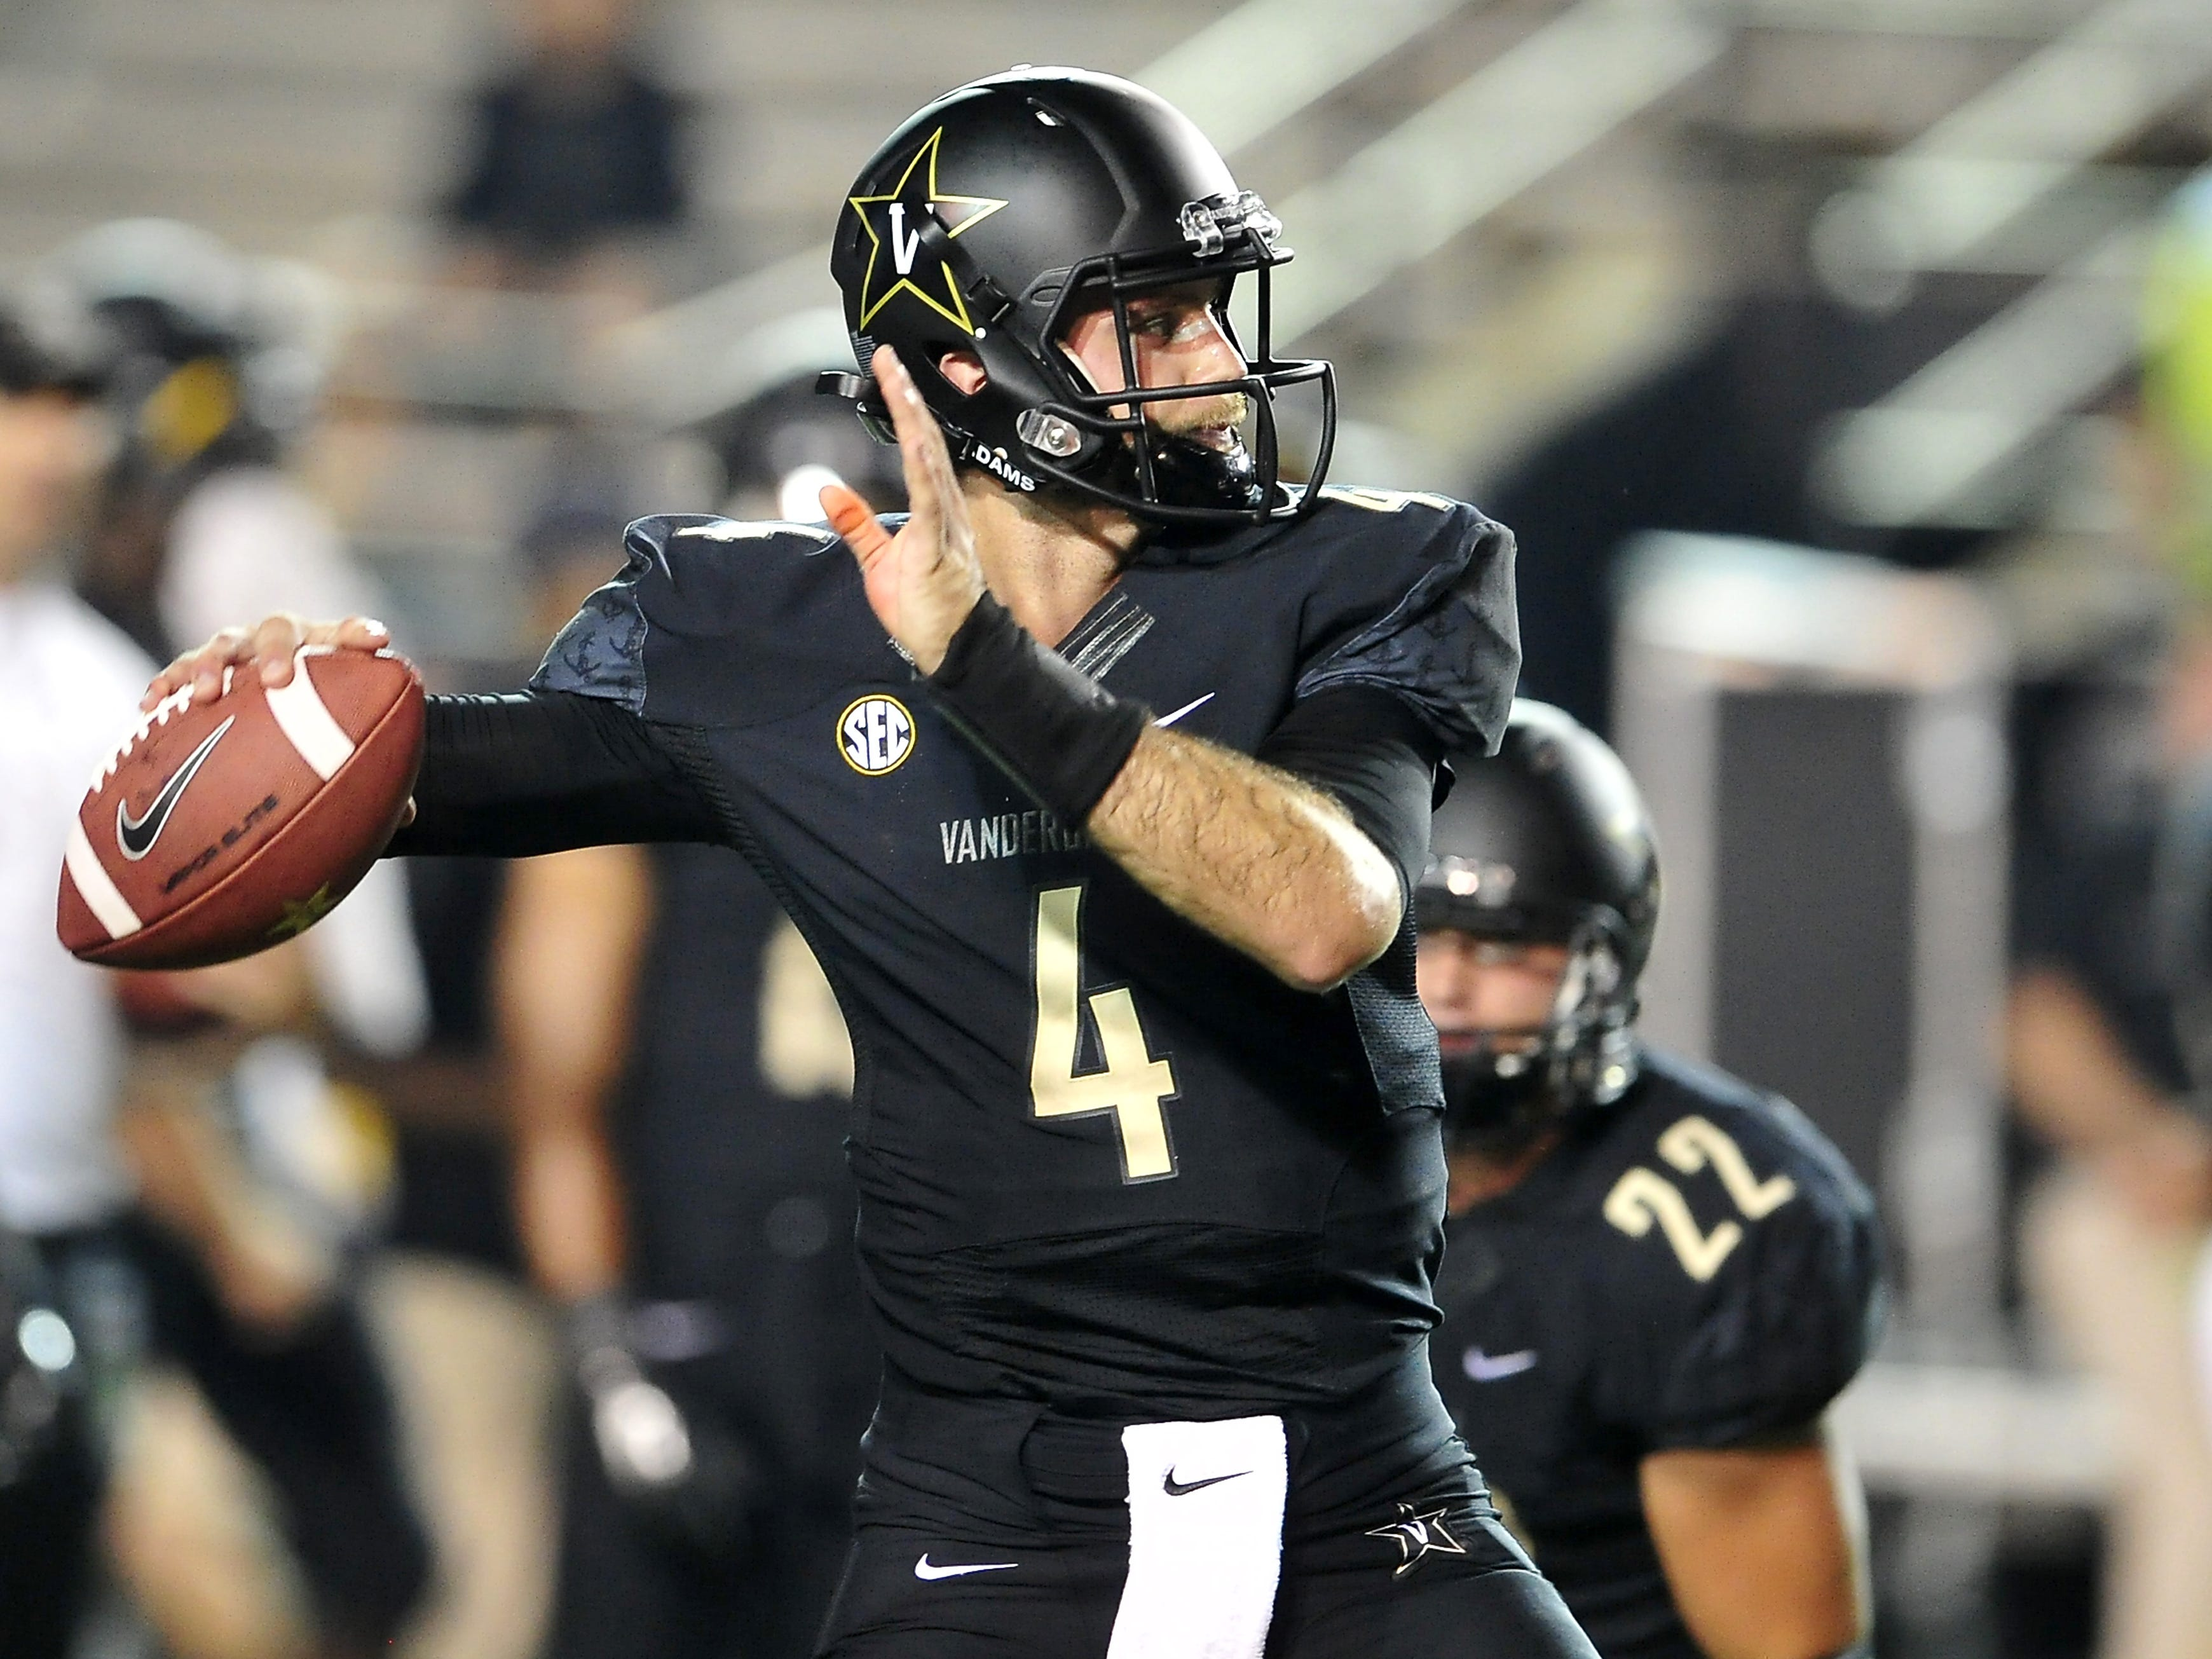 Vanderbilt quarterback Patton Robinette hopes to return to action Saturday after being sidelined by a concussion since Sept. 20.